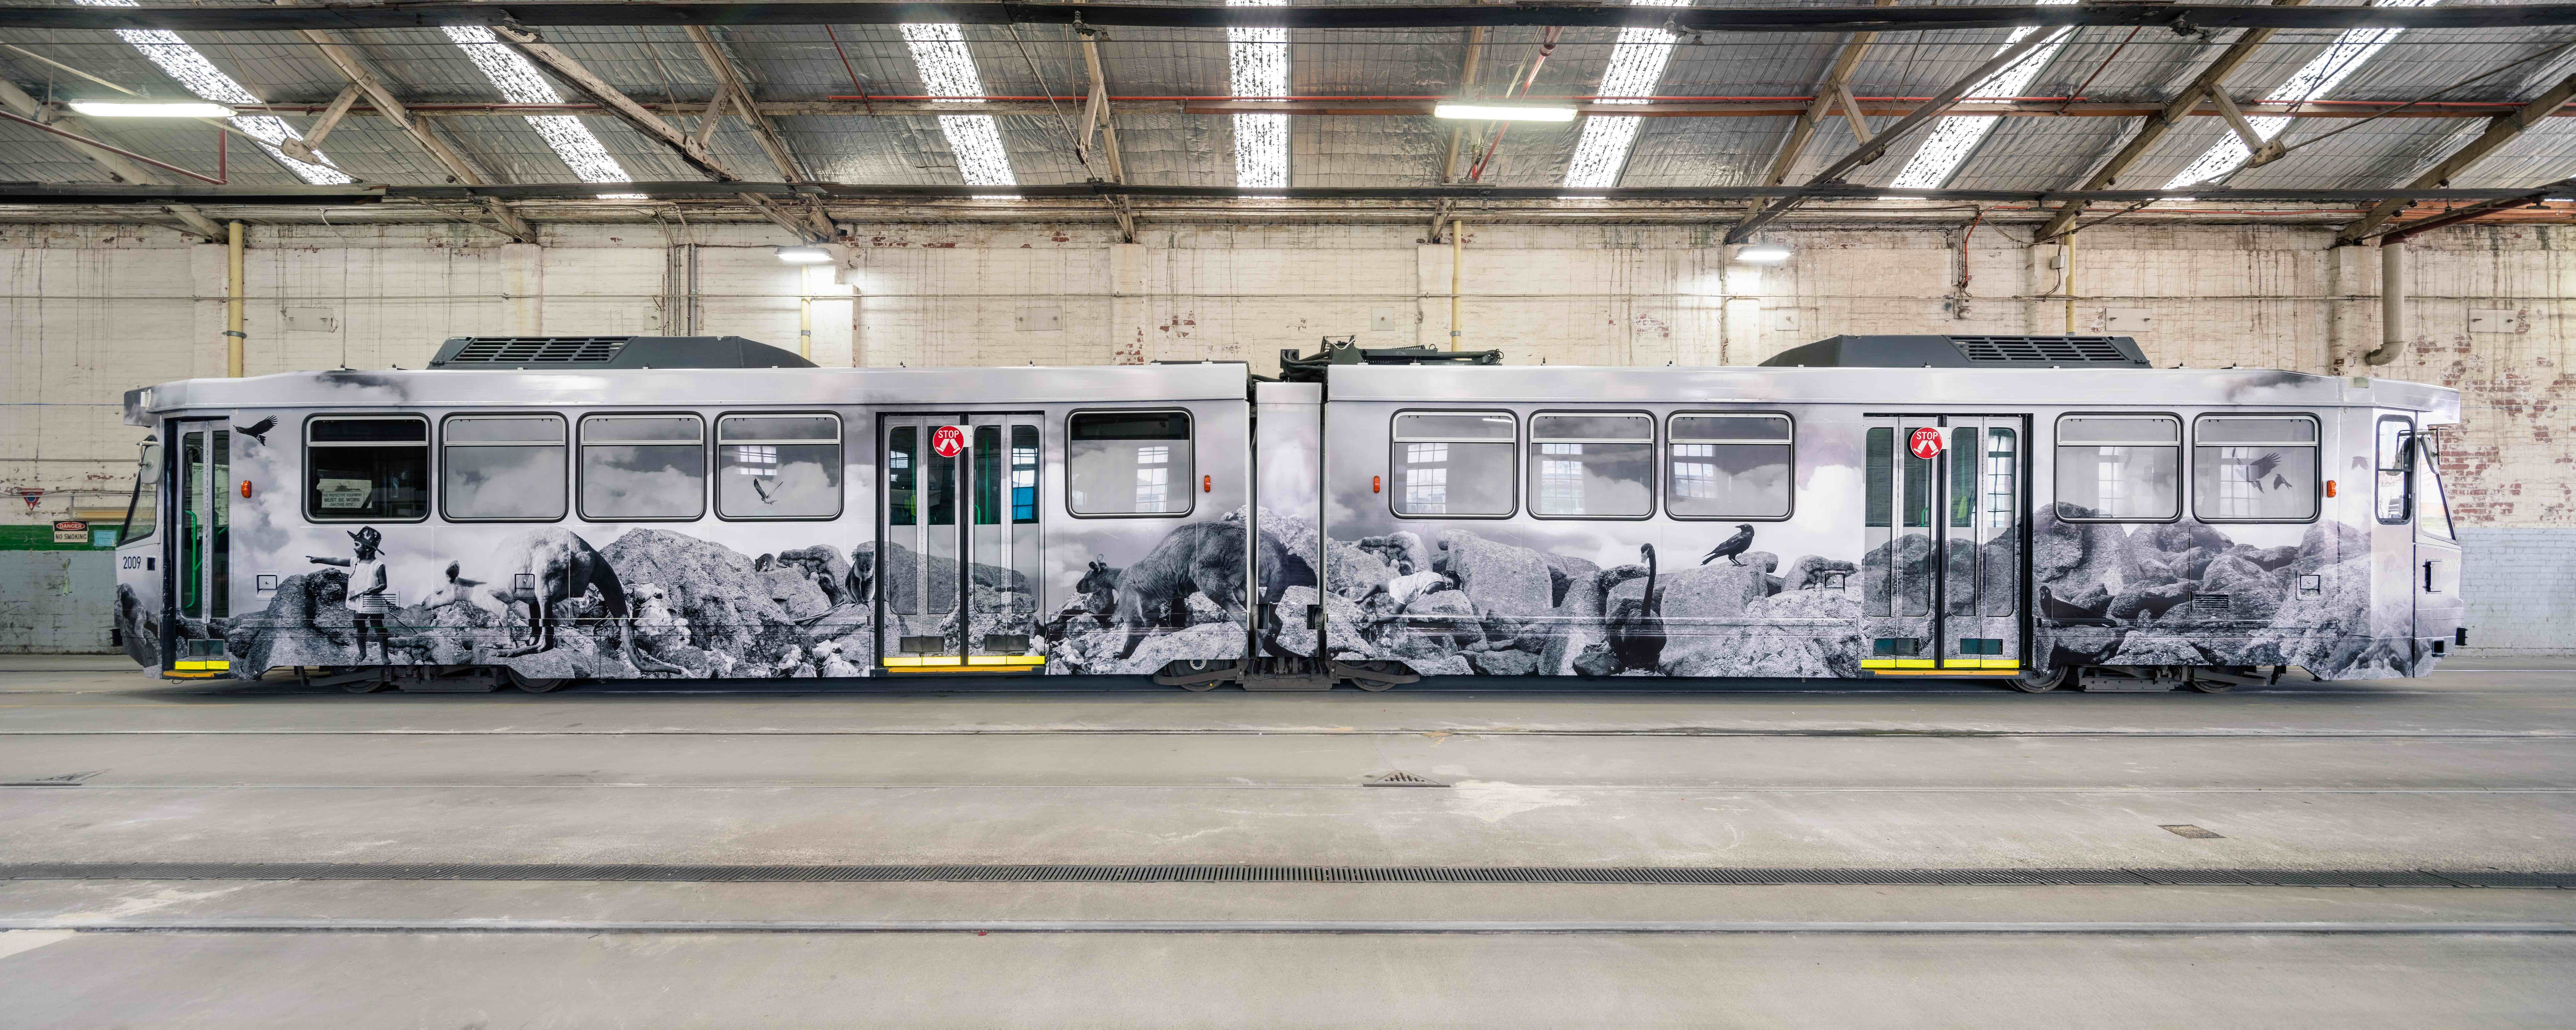 The first art tram to hit the tracks is a monochrome photo-media design from Hayley Millar-Baker, Credit: Supplied.